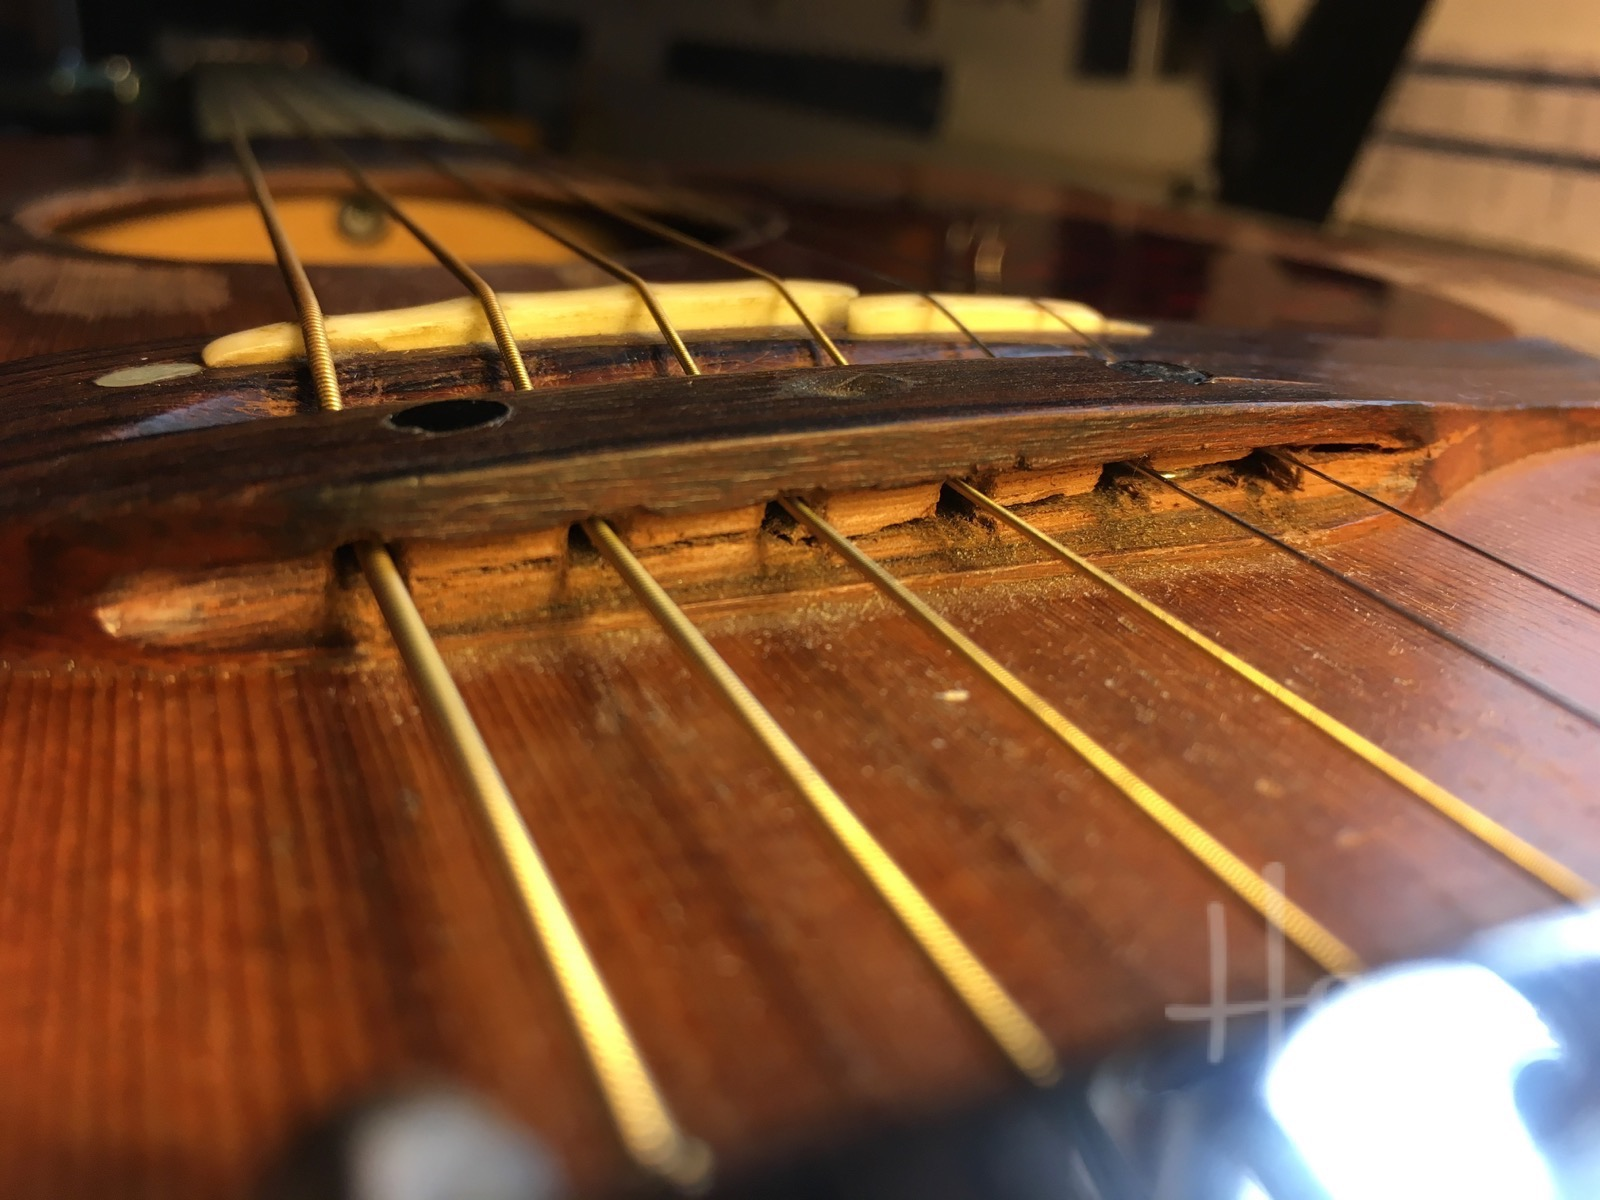 Here's the reason for that weird repair. This Takamine has a seriously cracked bridge